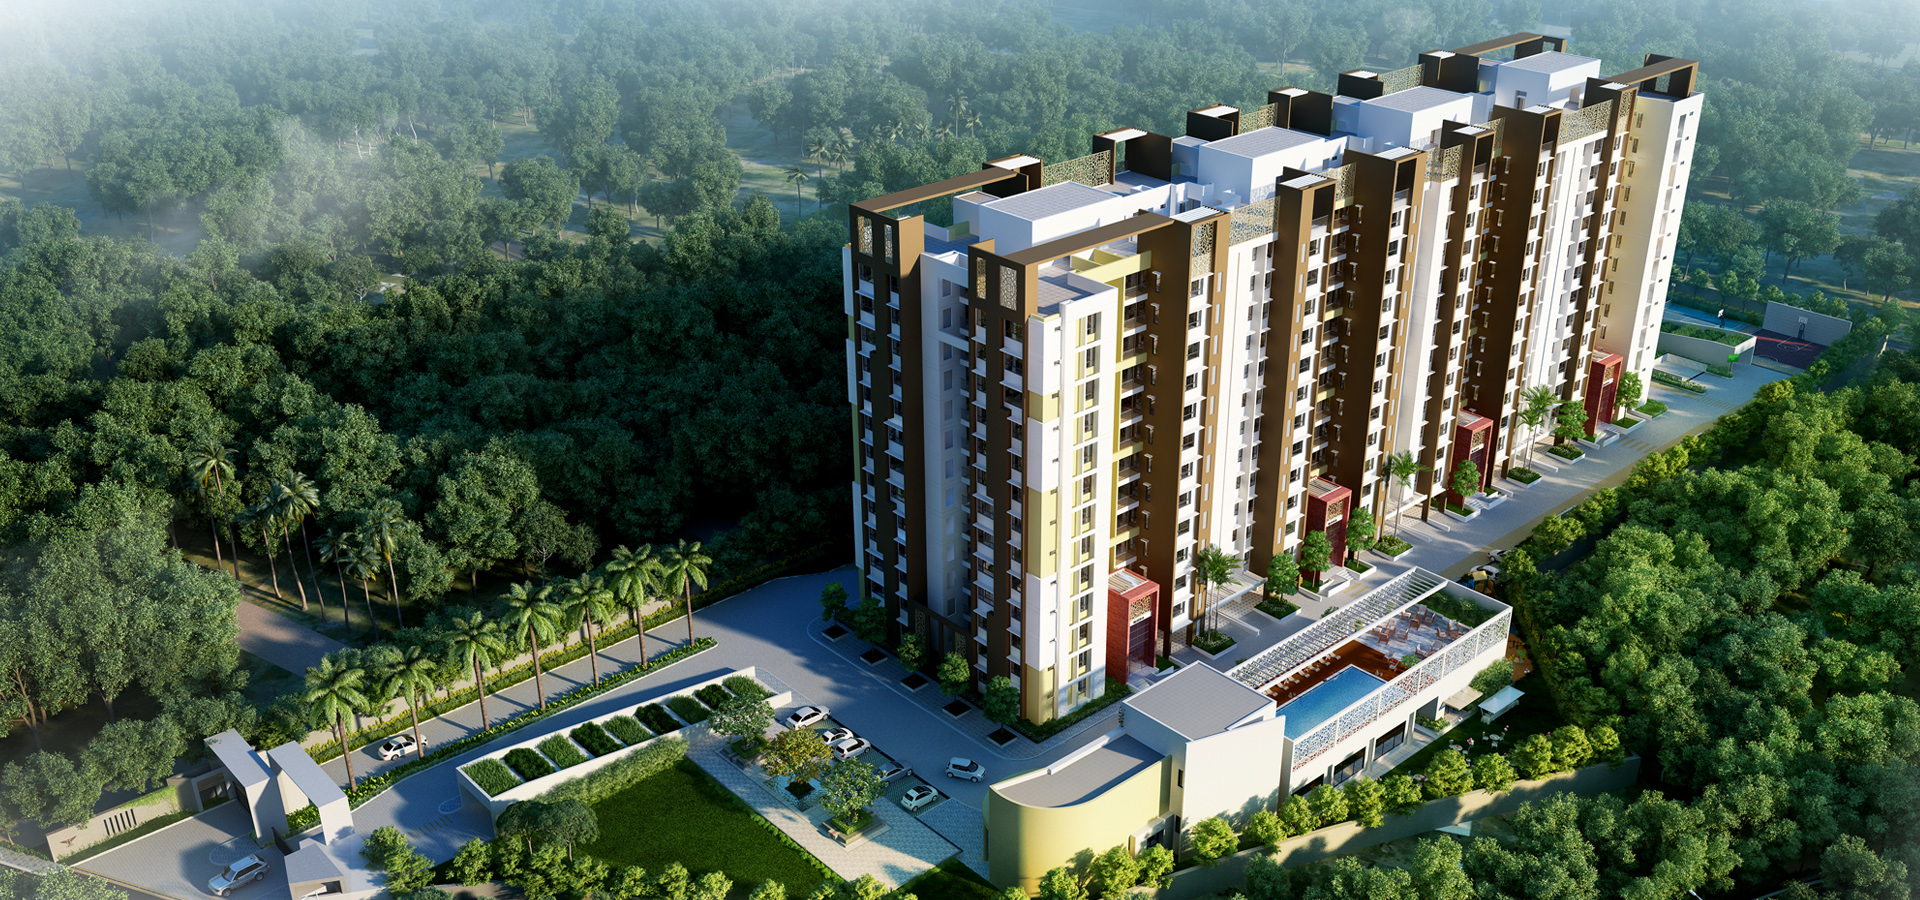 Sale of Luxury Apartments & flats in Bhubaneswar by Falcon Real Estate